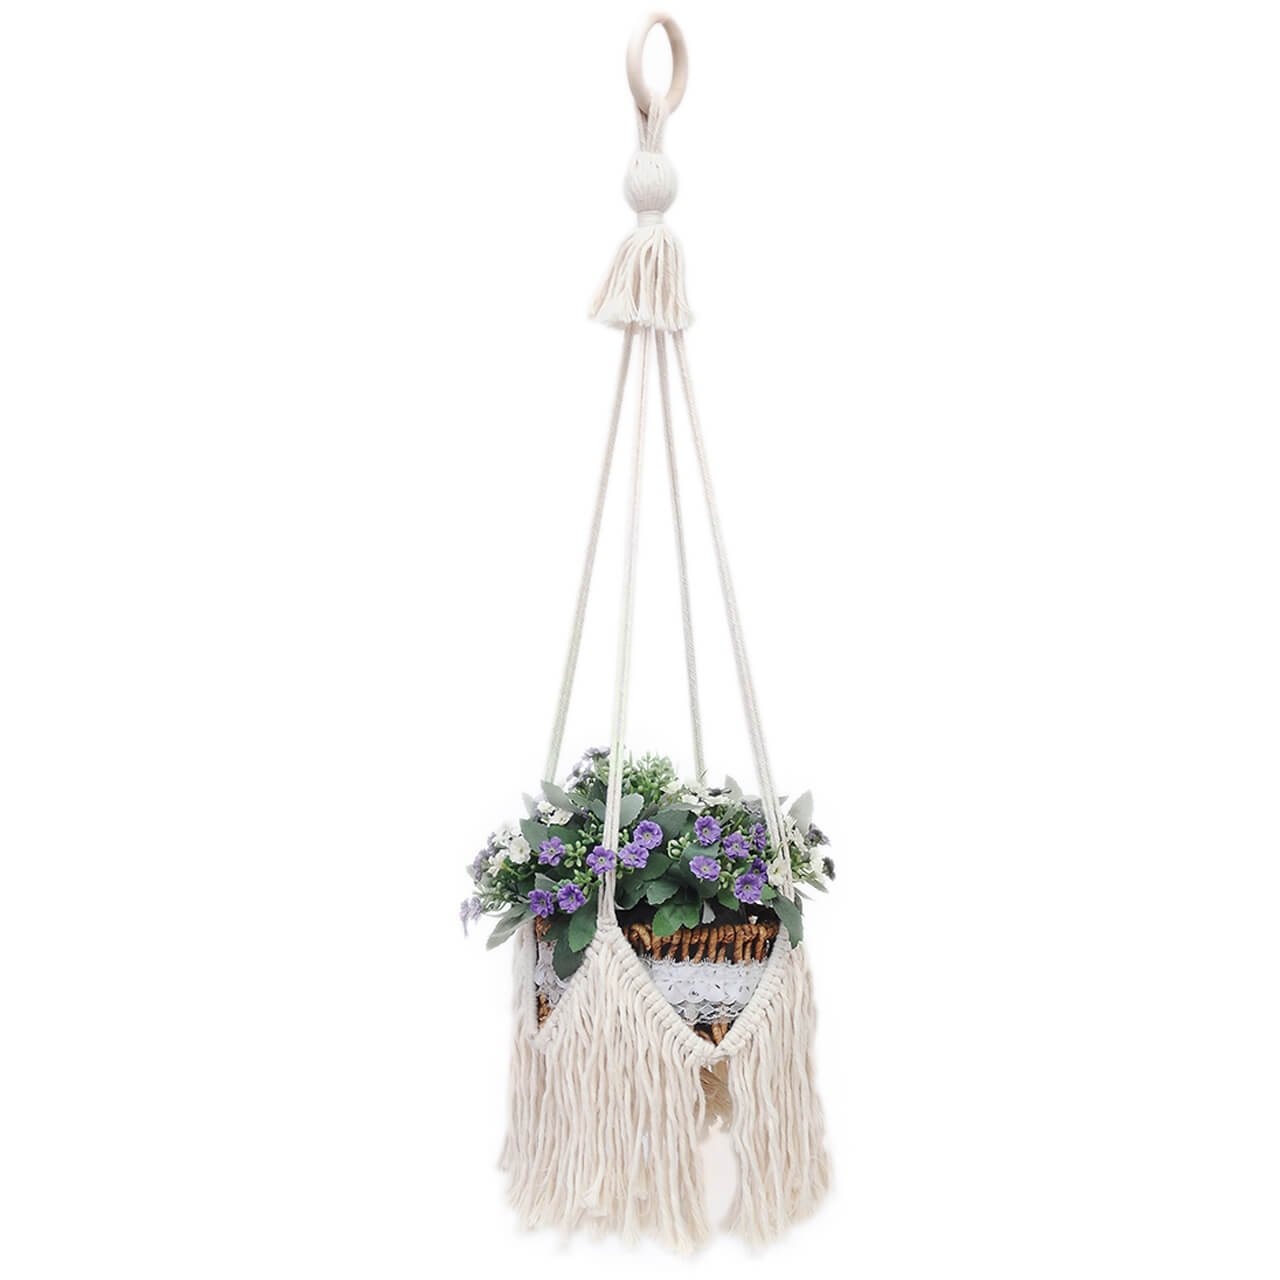 UL Plant Hanger 100% Handmade Cotton Rope Plant Basket Holder for Pots/Fish Tank, Indoor Outdoor Bohemian Home Macrame Hanging Flower Holder, 31 inch(1 Pack) by UL Source